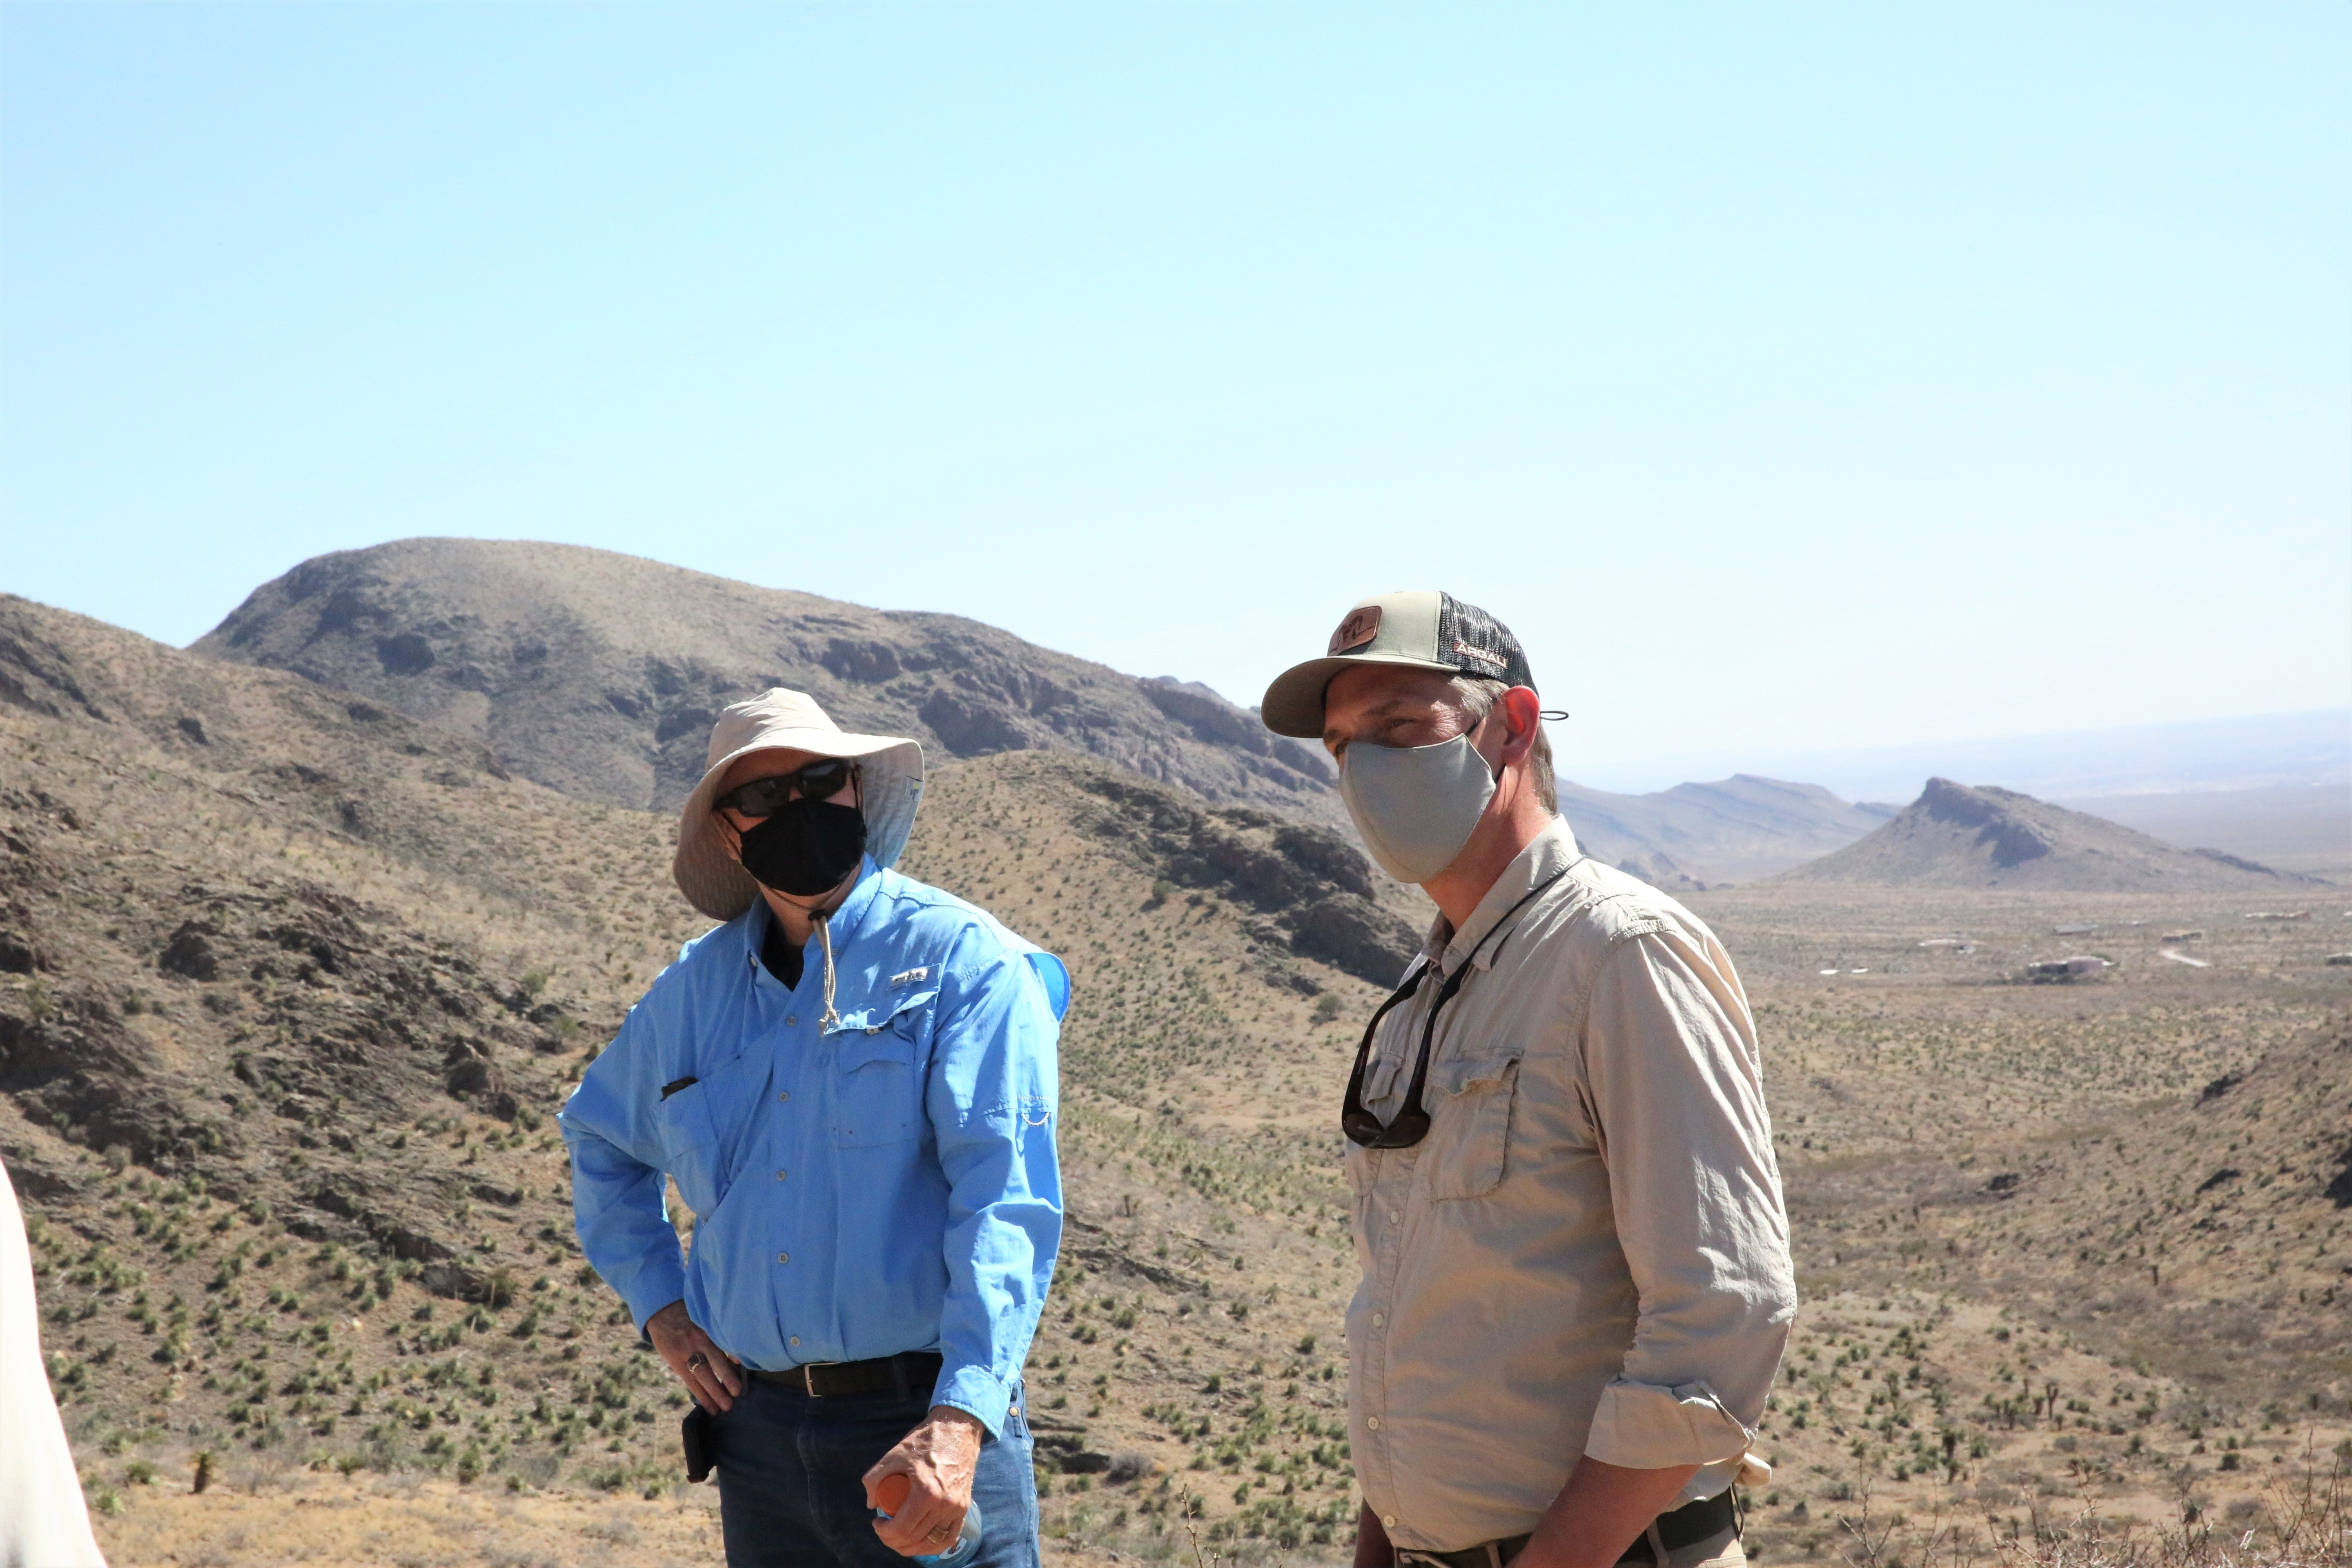 From left, Bureau of Land Management acting state director Steve Wells and U.S. Sen. Martin Heinrich, D-N.M., hike the Achenbach Canyon Trail leading into the Organ Mountains-Desert Peaks National Monument in Las Cruces, N.M. on Wednesday, April 7, 2021.